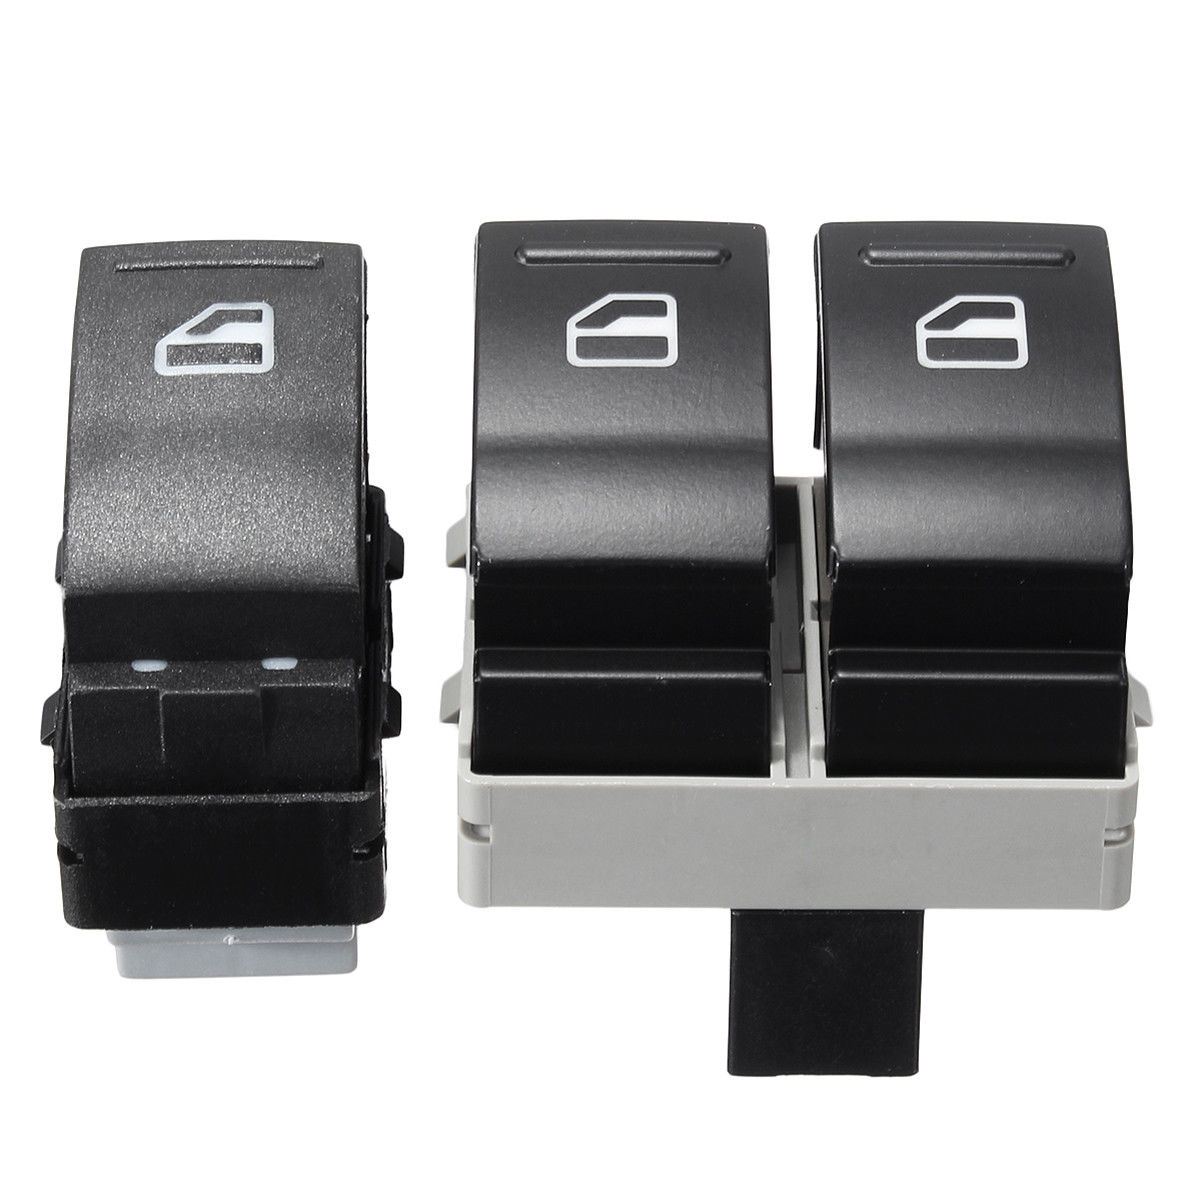 2x Electric Window Switch Driver Side For Vw Transporter T5 T6 7e0959855a Black